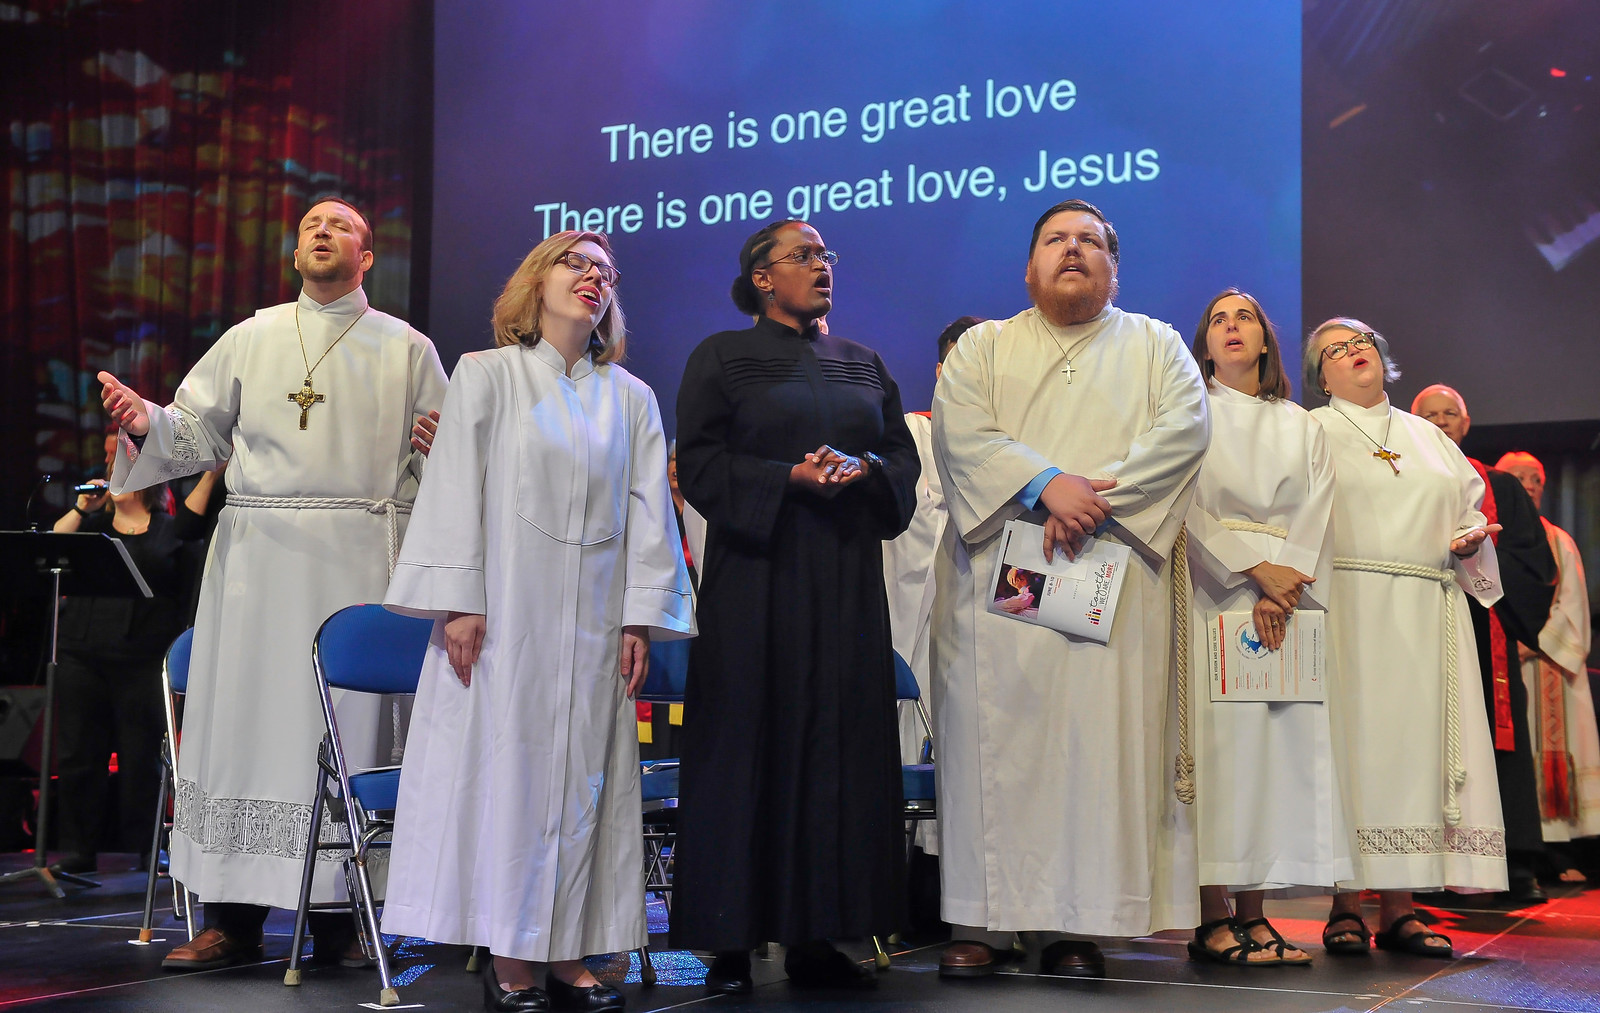 From left, Grant Taylor Merrell, JillAnn Knonenborg, Jennifer Helen Lewis, Khristian Albert McCutchan, Julie Marie Pimlott and Jennifer Dolwick Evans sing at The Commissioning and Ordination Service at the 2017 INUMC Annual Conference in Indianapolis.